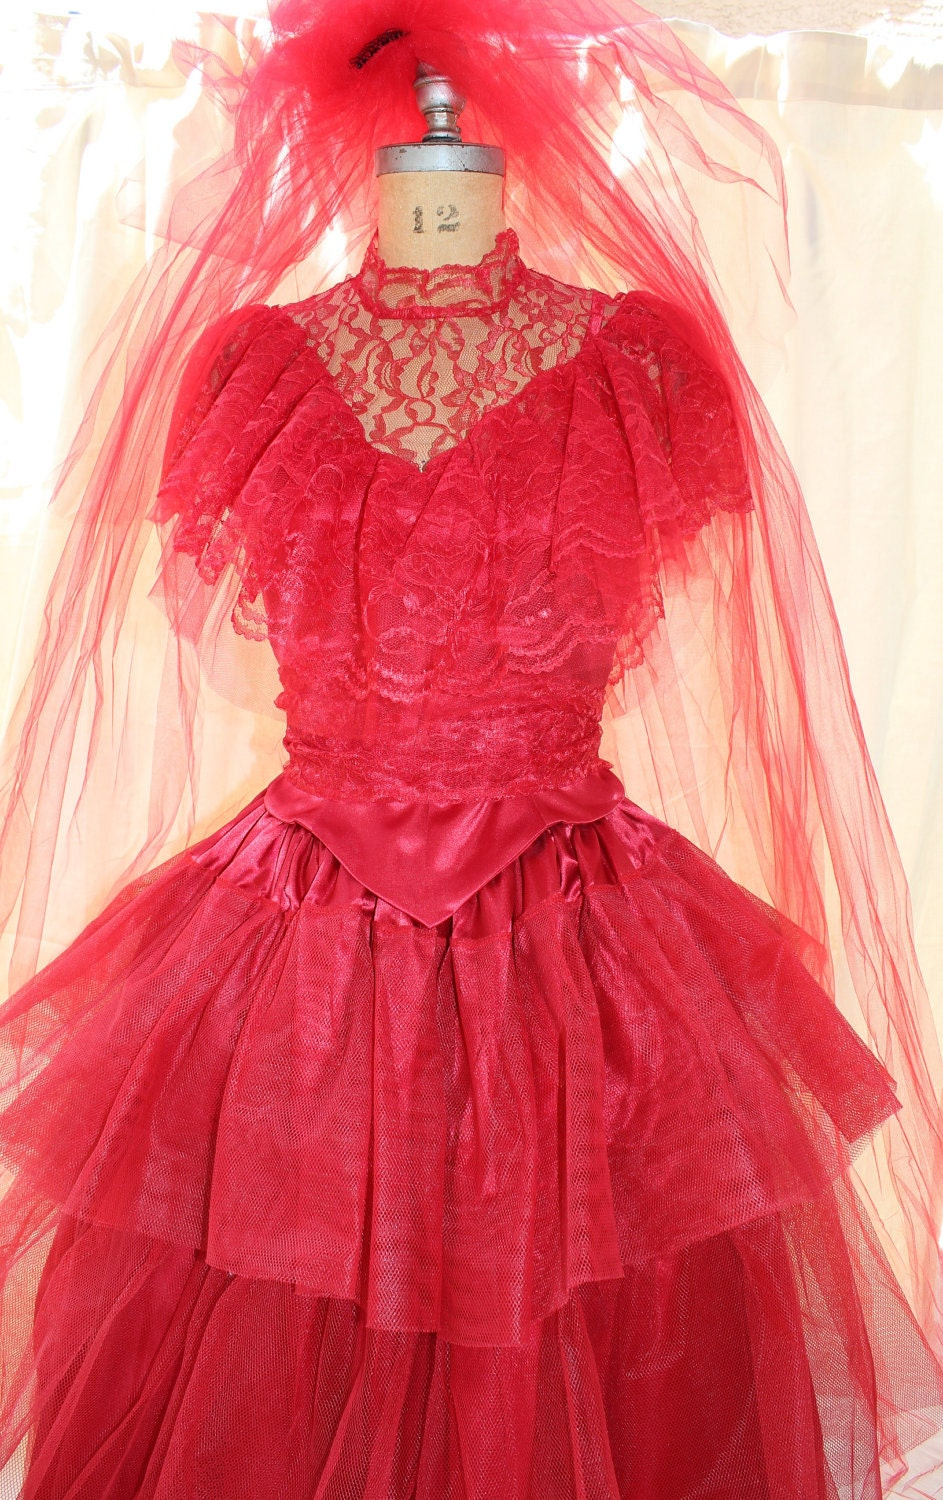 lydia deetz red wedding dress beetlejuice sz 6 med tim